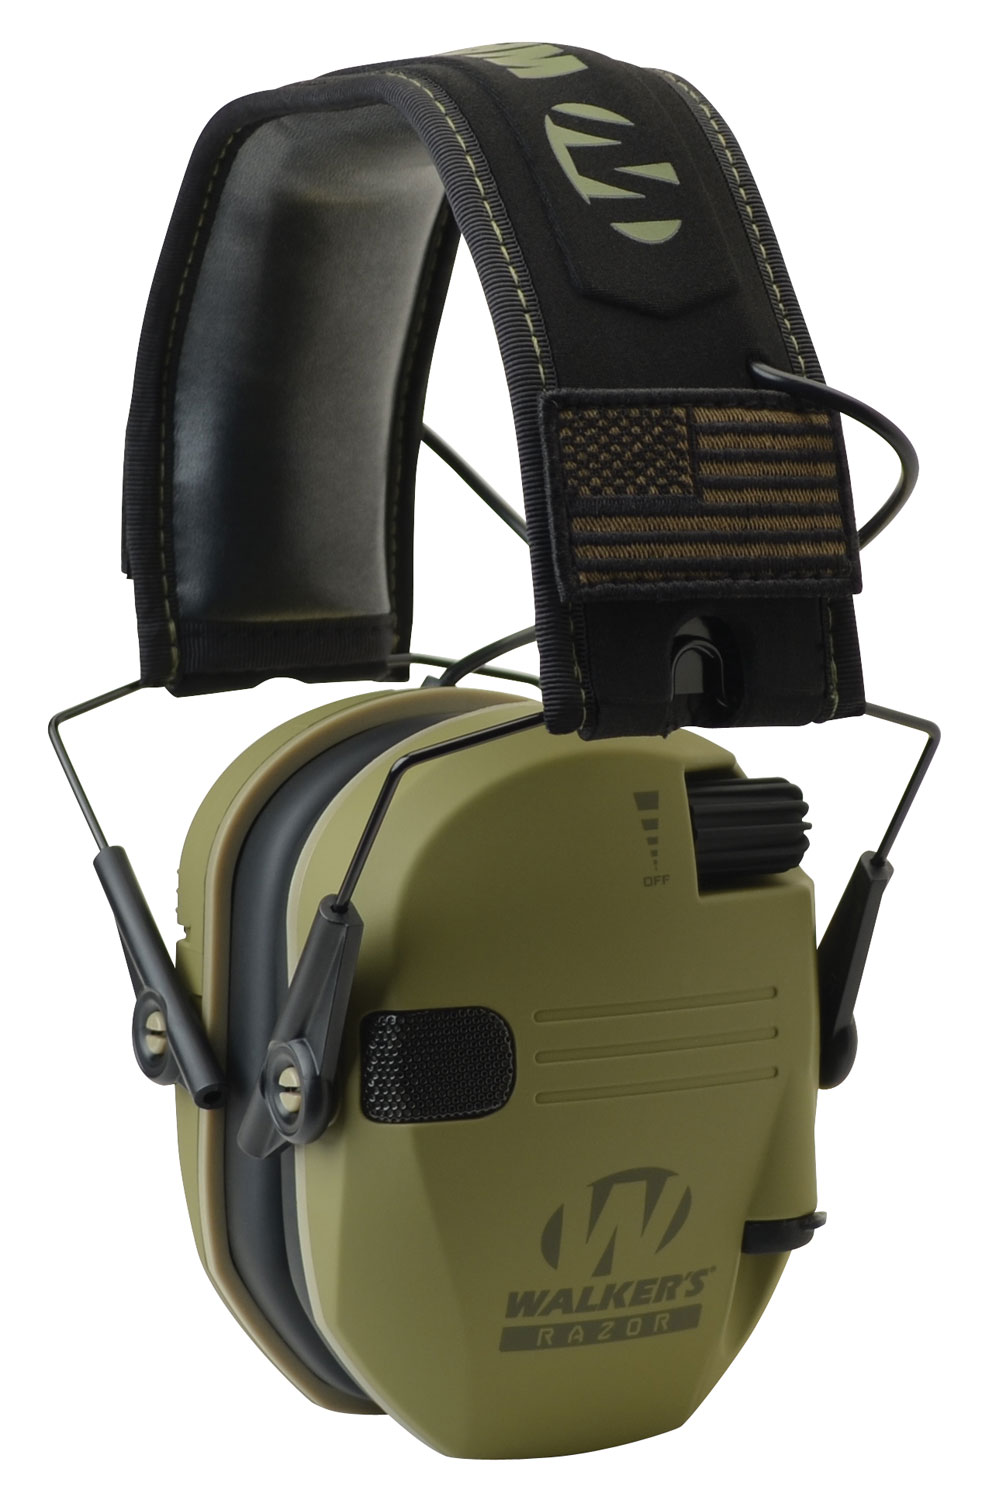 WALKERS MUFF ELECTRONIC RAZOR SLIM PATRIOT 23dB OD GREEN